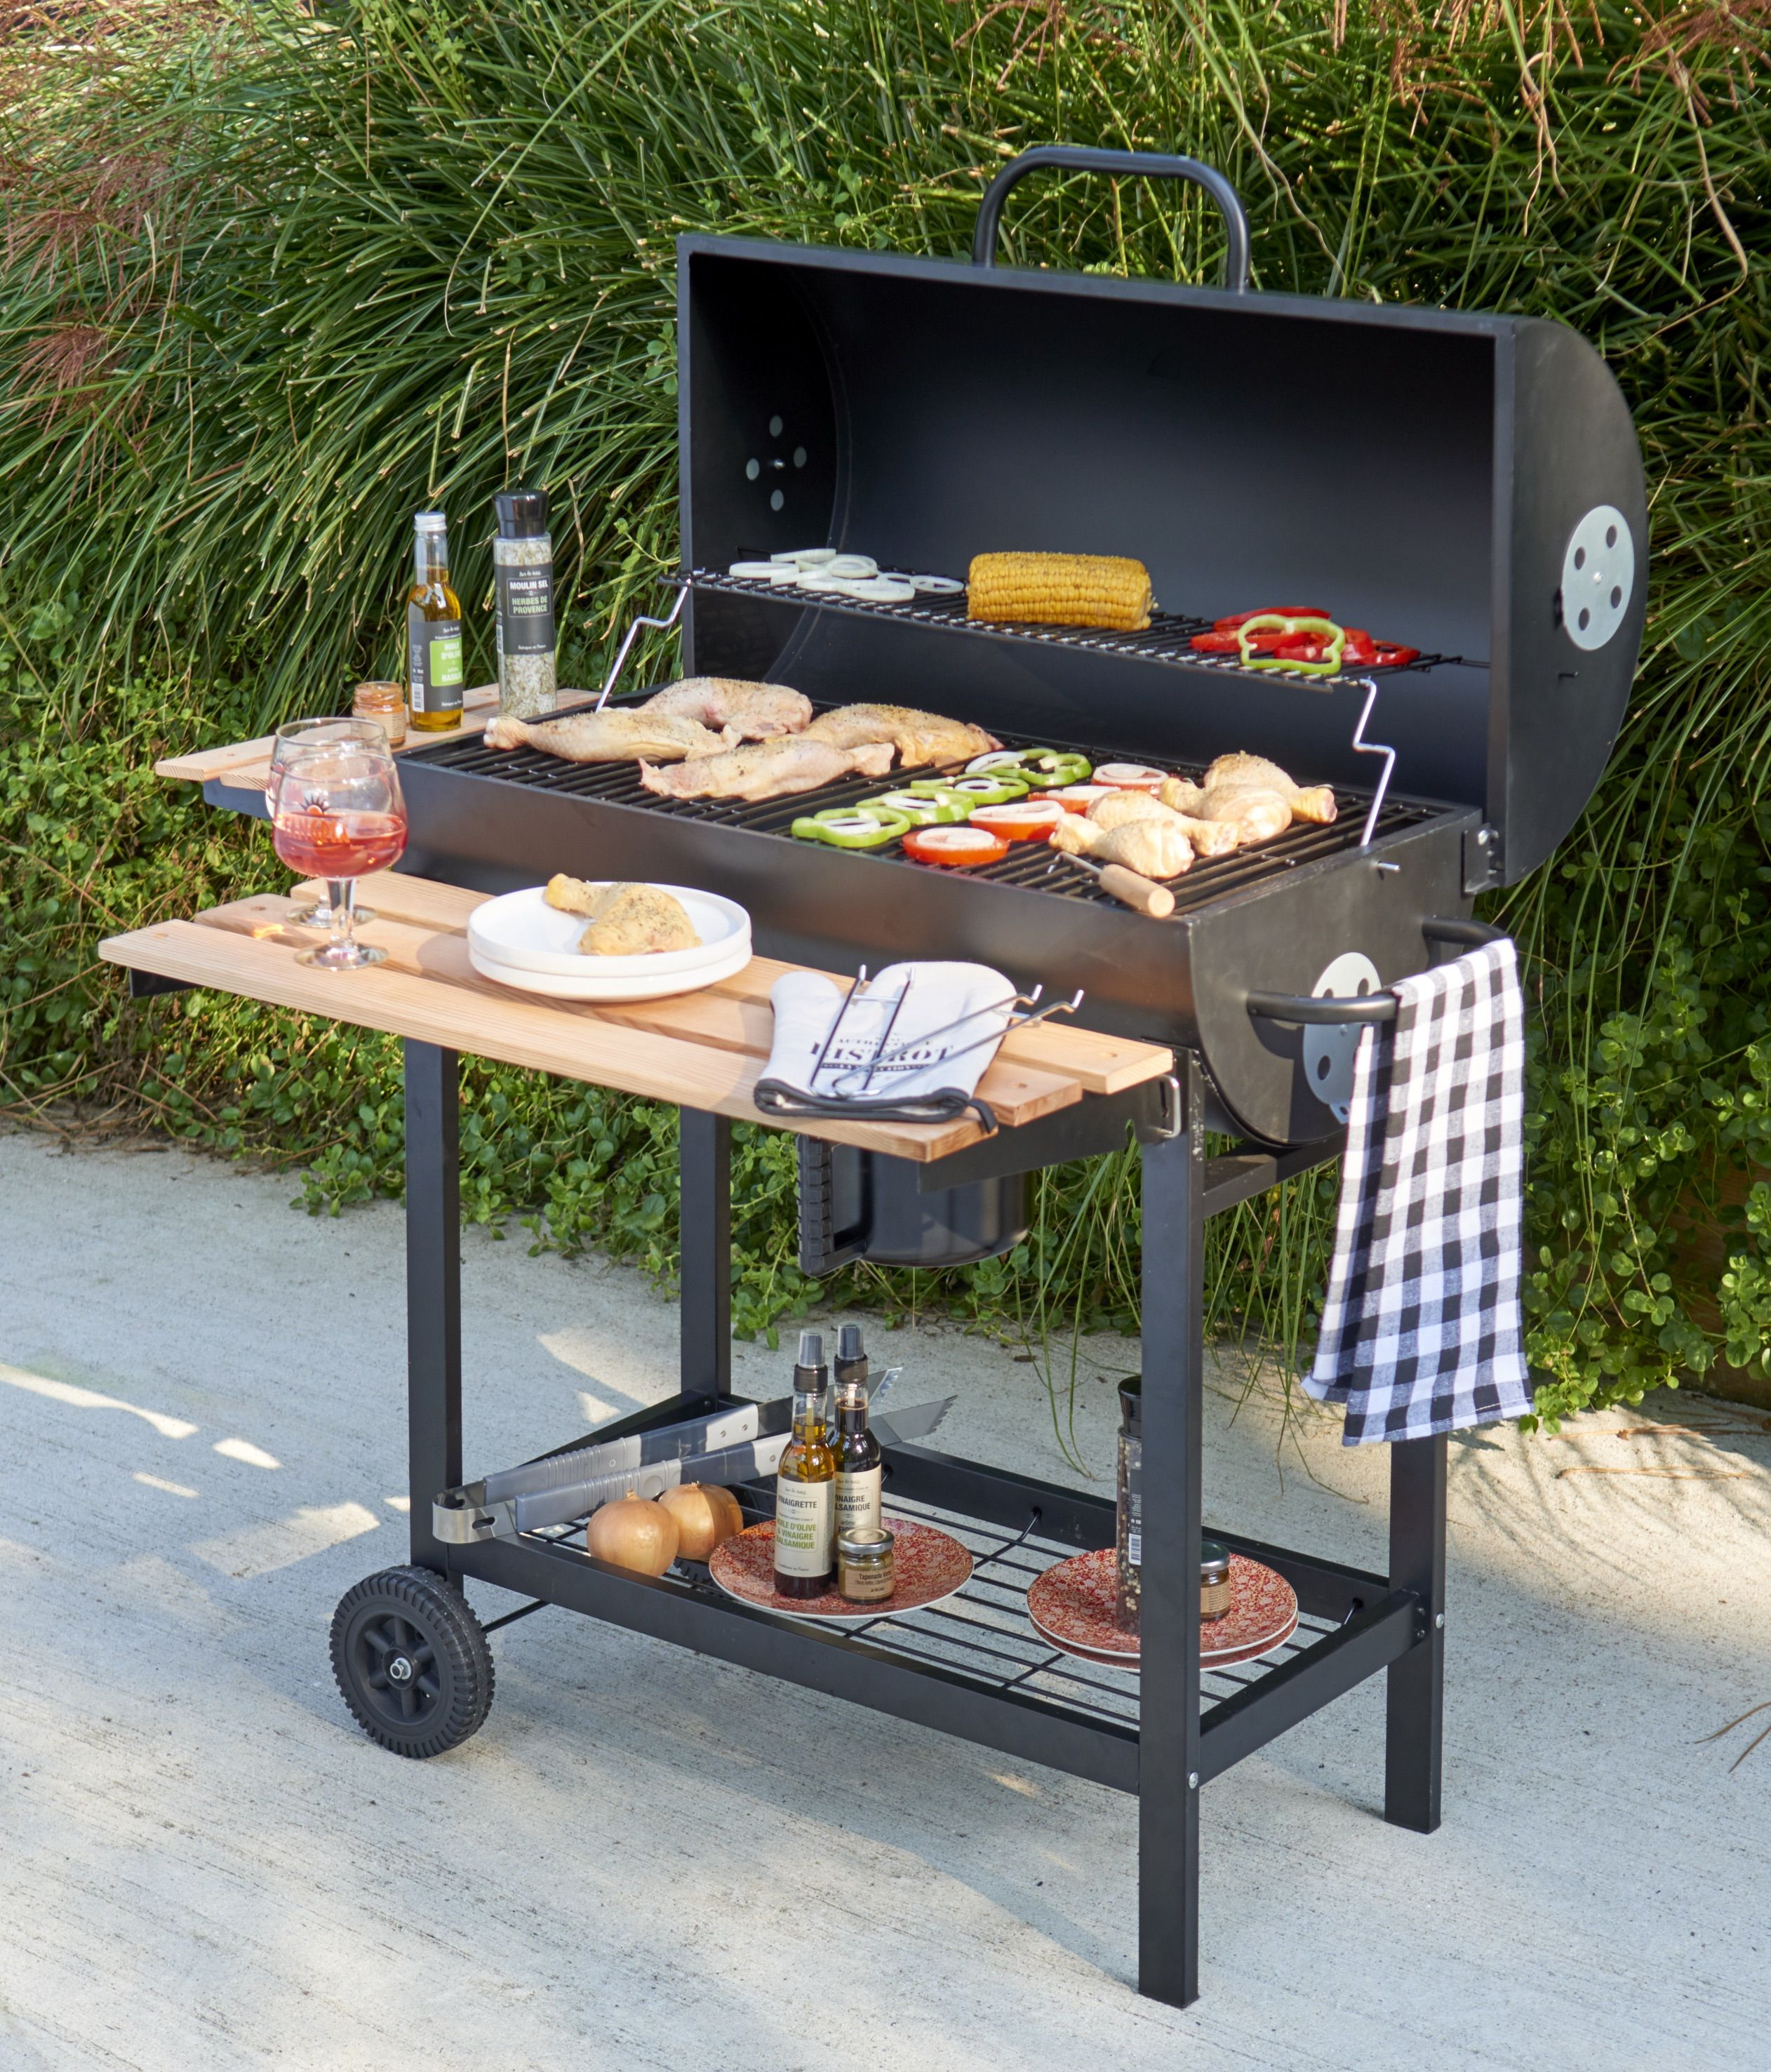 Barbecue Et Plancha Pas Cher Gifi Barbecue A Charbon Idees Barbecue Barbecue